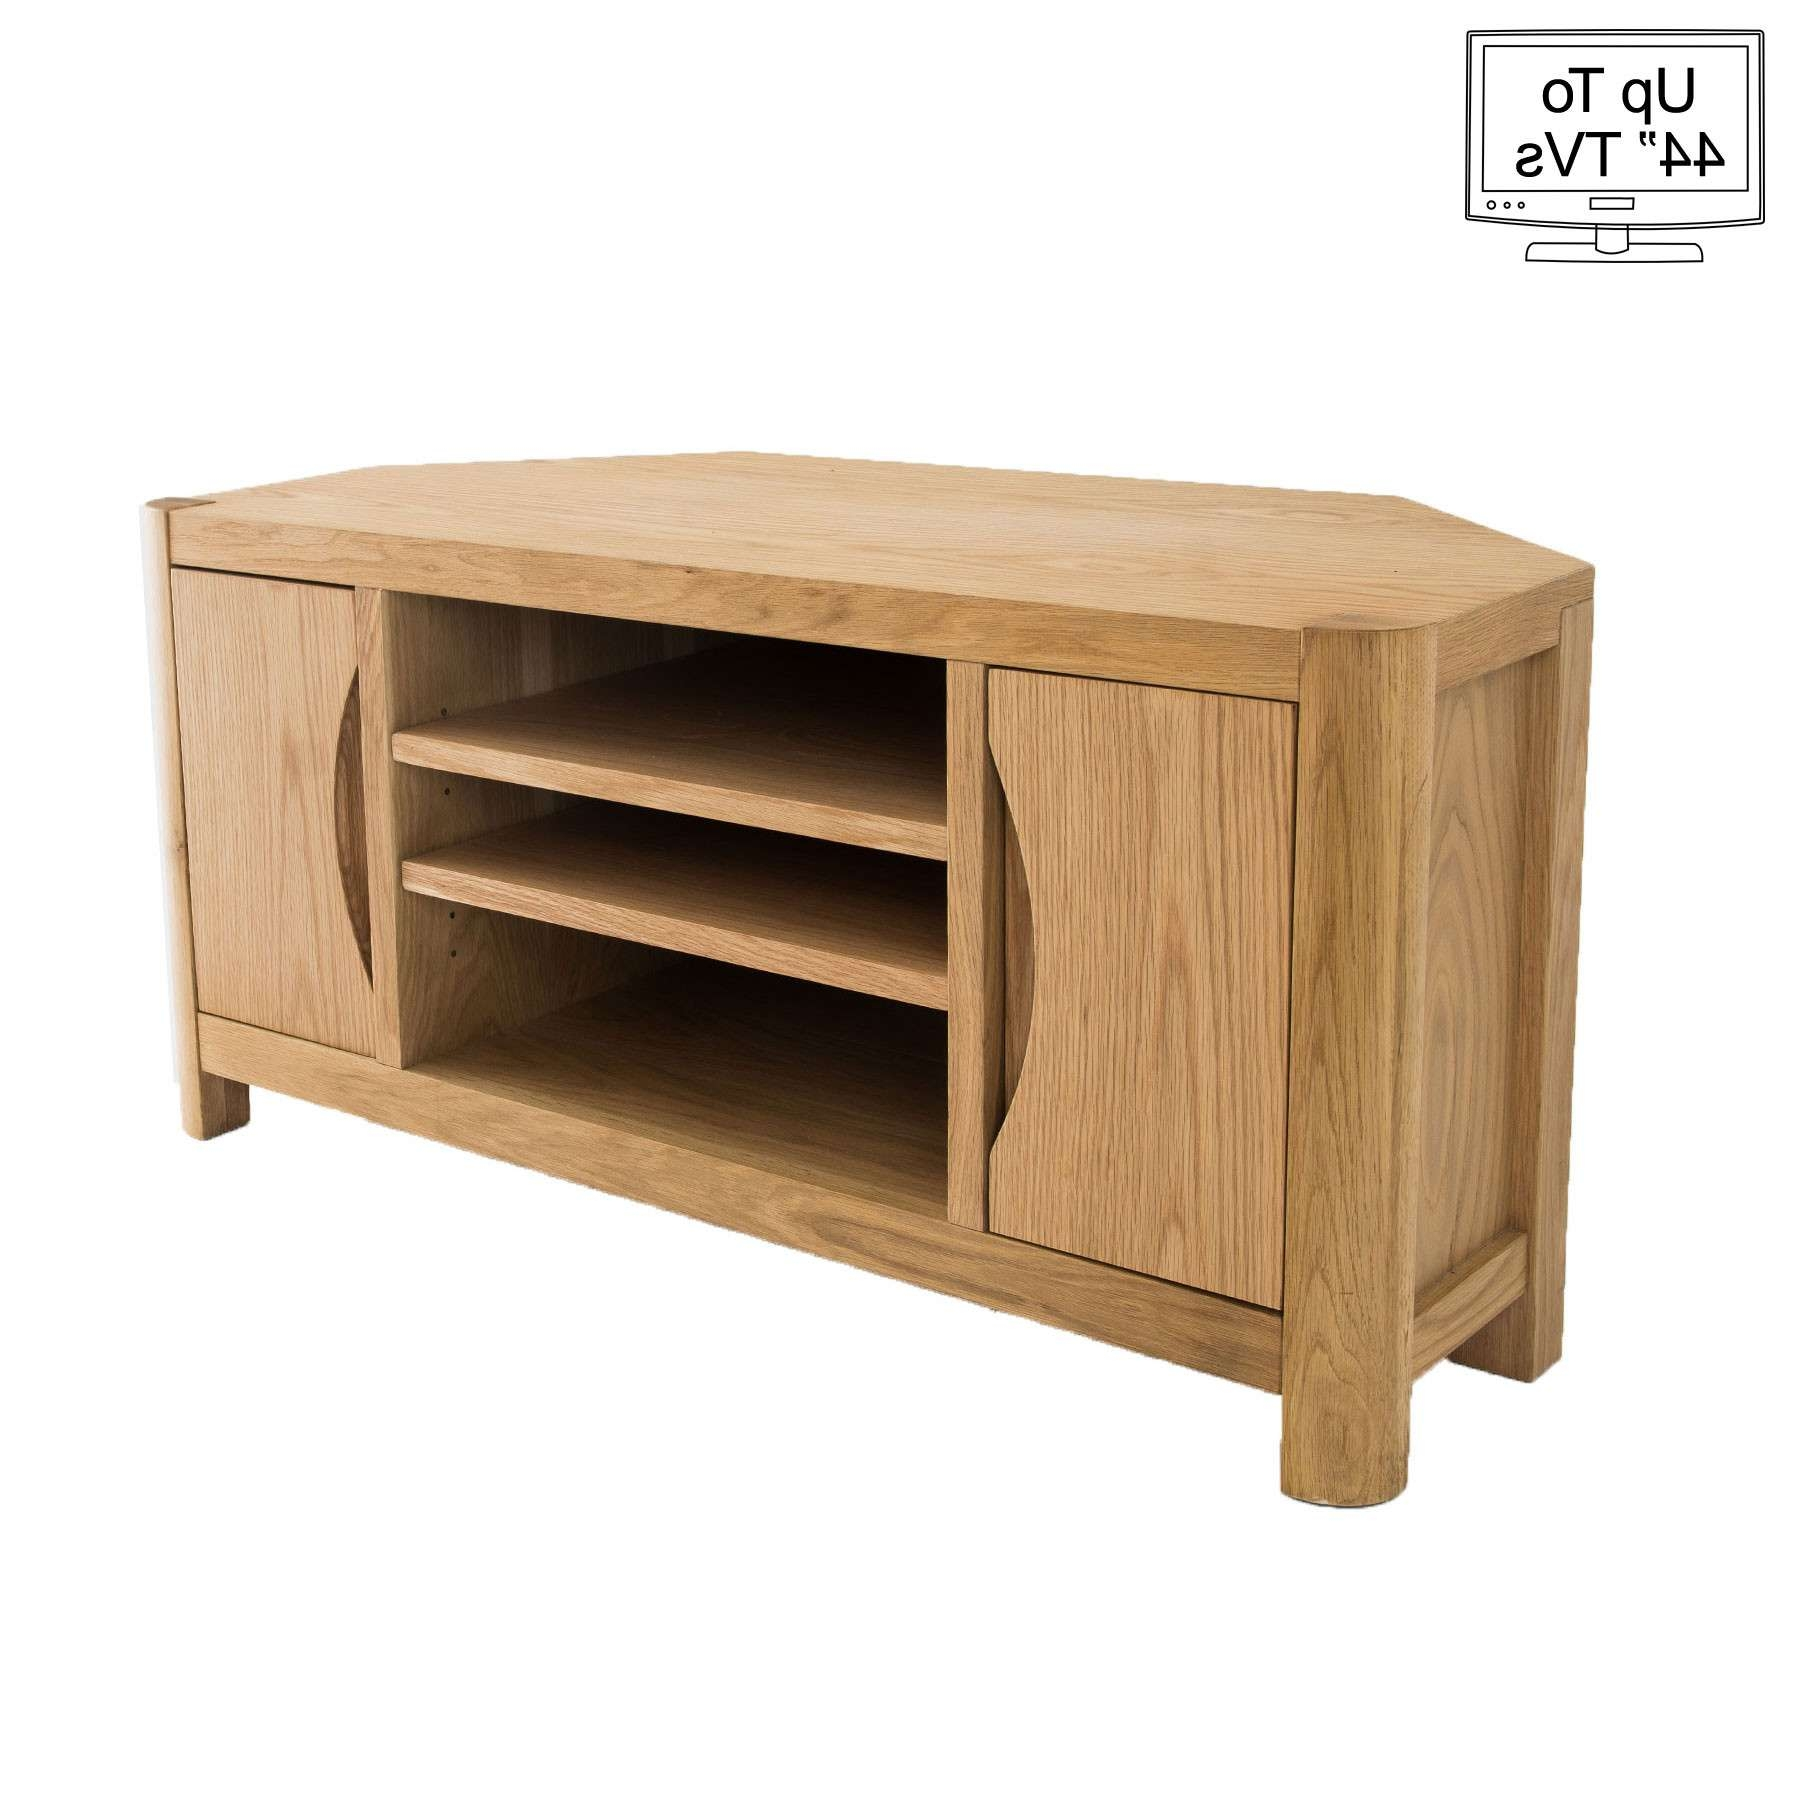 "Light Oak Corner Tv Stand For Up To 44"" Tvs With Regard To Light Oak Corner Tv Cabinets (View 7 of 20)"